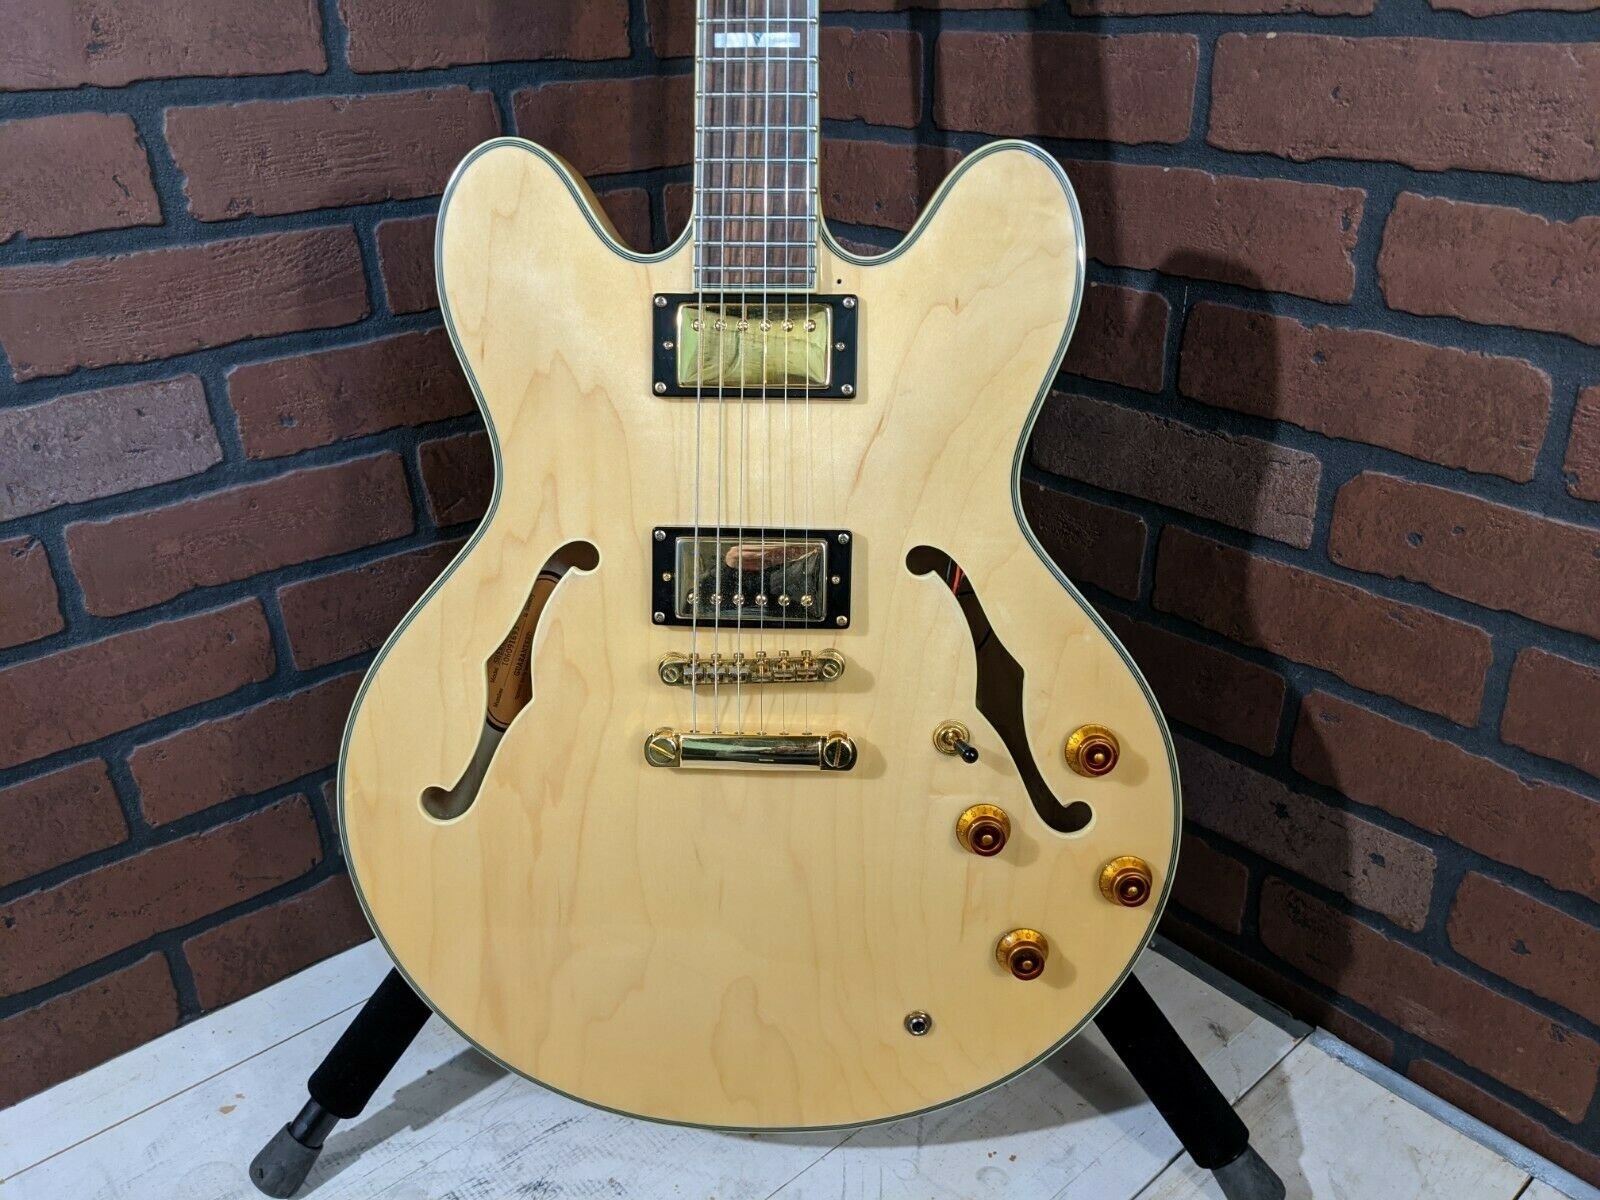 Epiphone Sheraton II Semi-Hollow Electric Guitar - Natural - USED